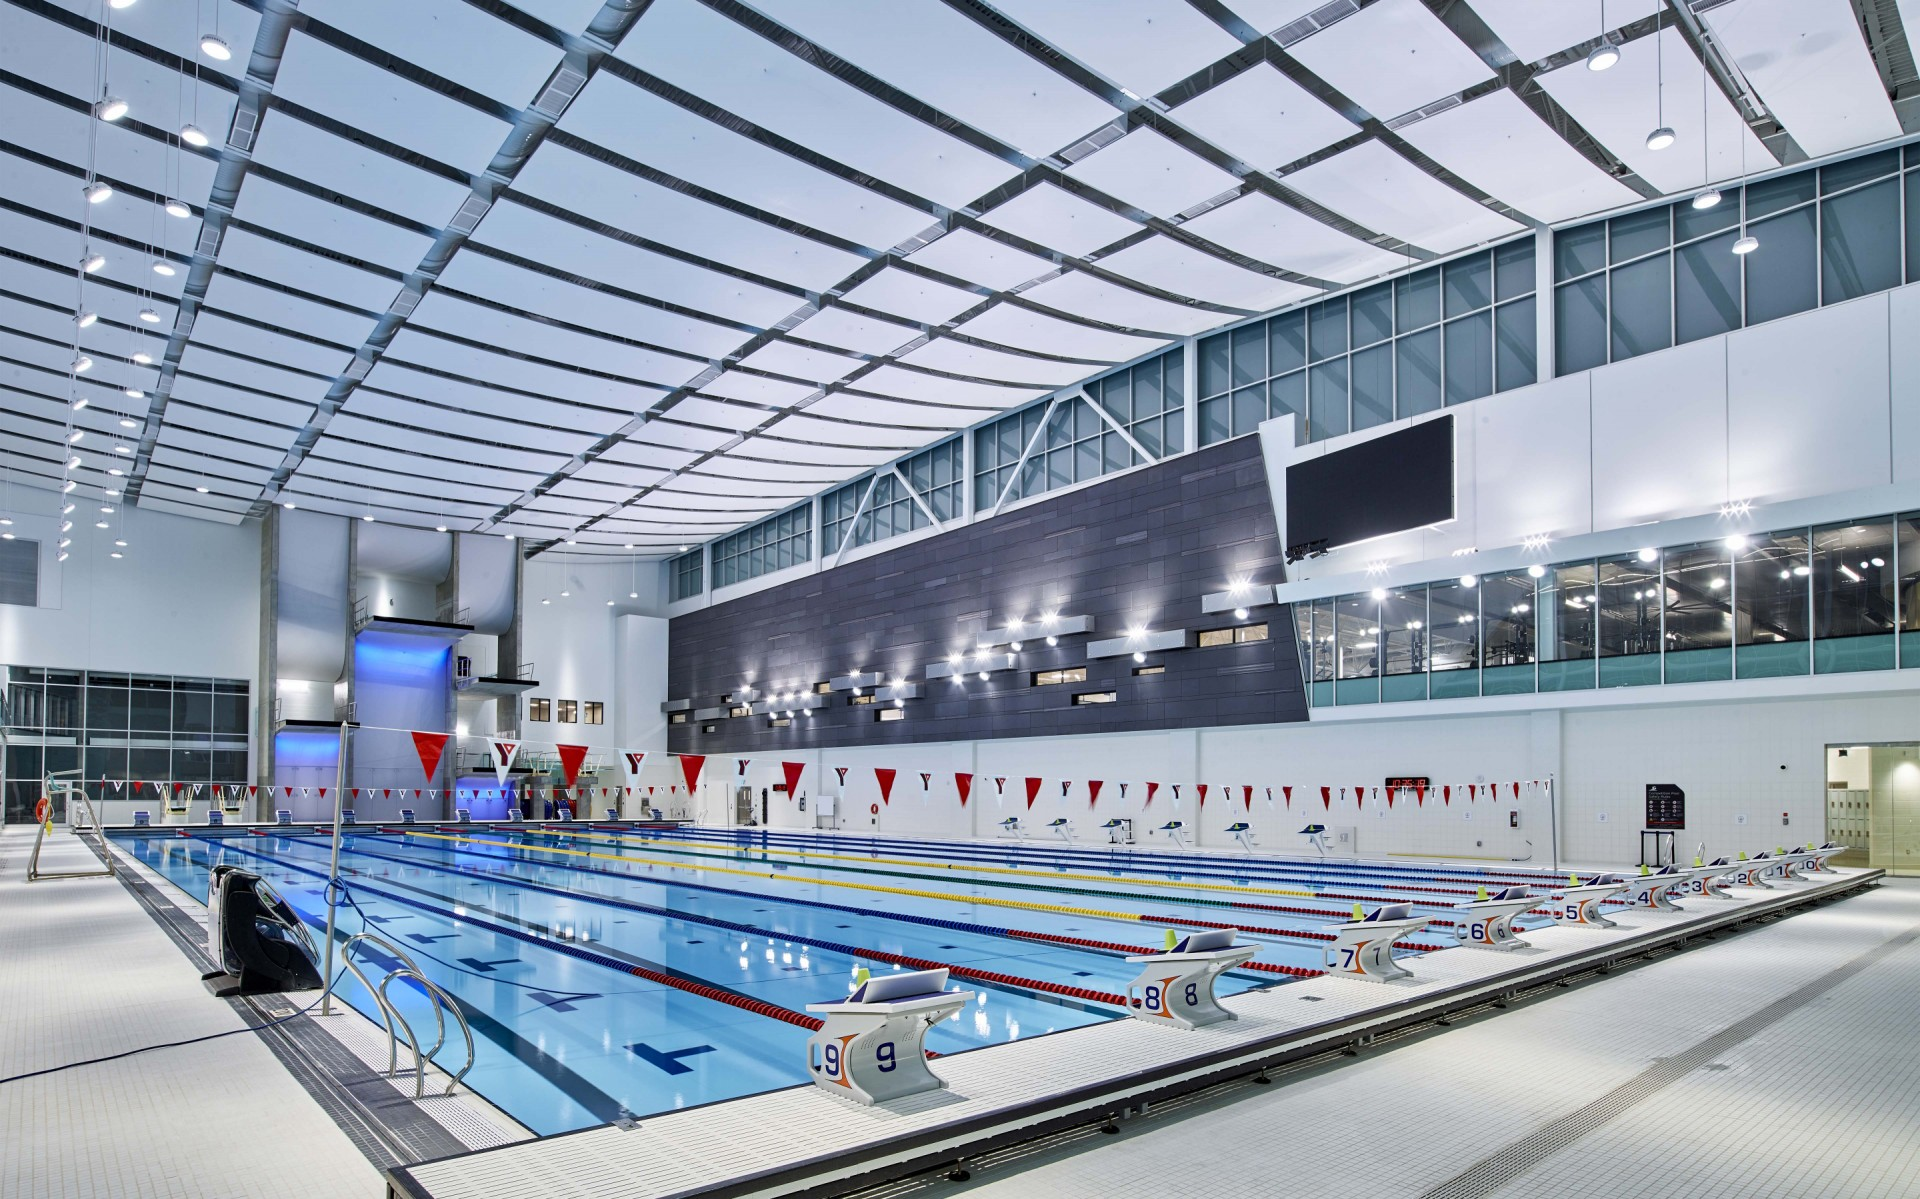 To provide a uniform aesthetic and a phenomenal quality of light for both the recreation and competitive aquatic facilities, SMP Lighting chose Lumenpulse Lumenbeam luminaires. – Ian Grant